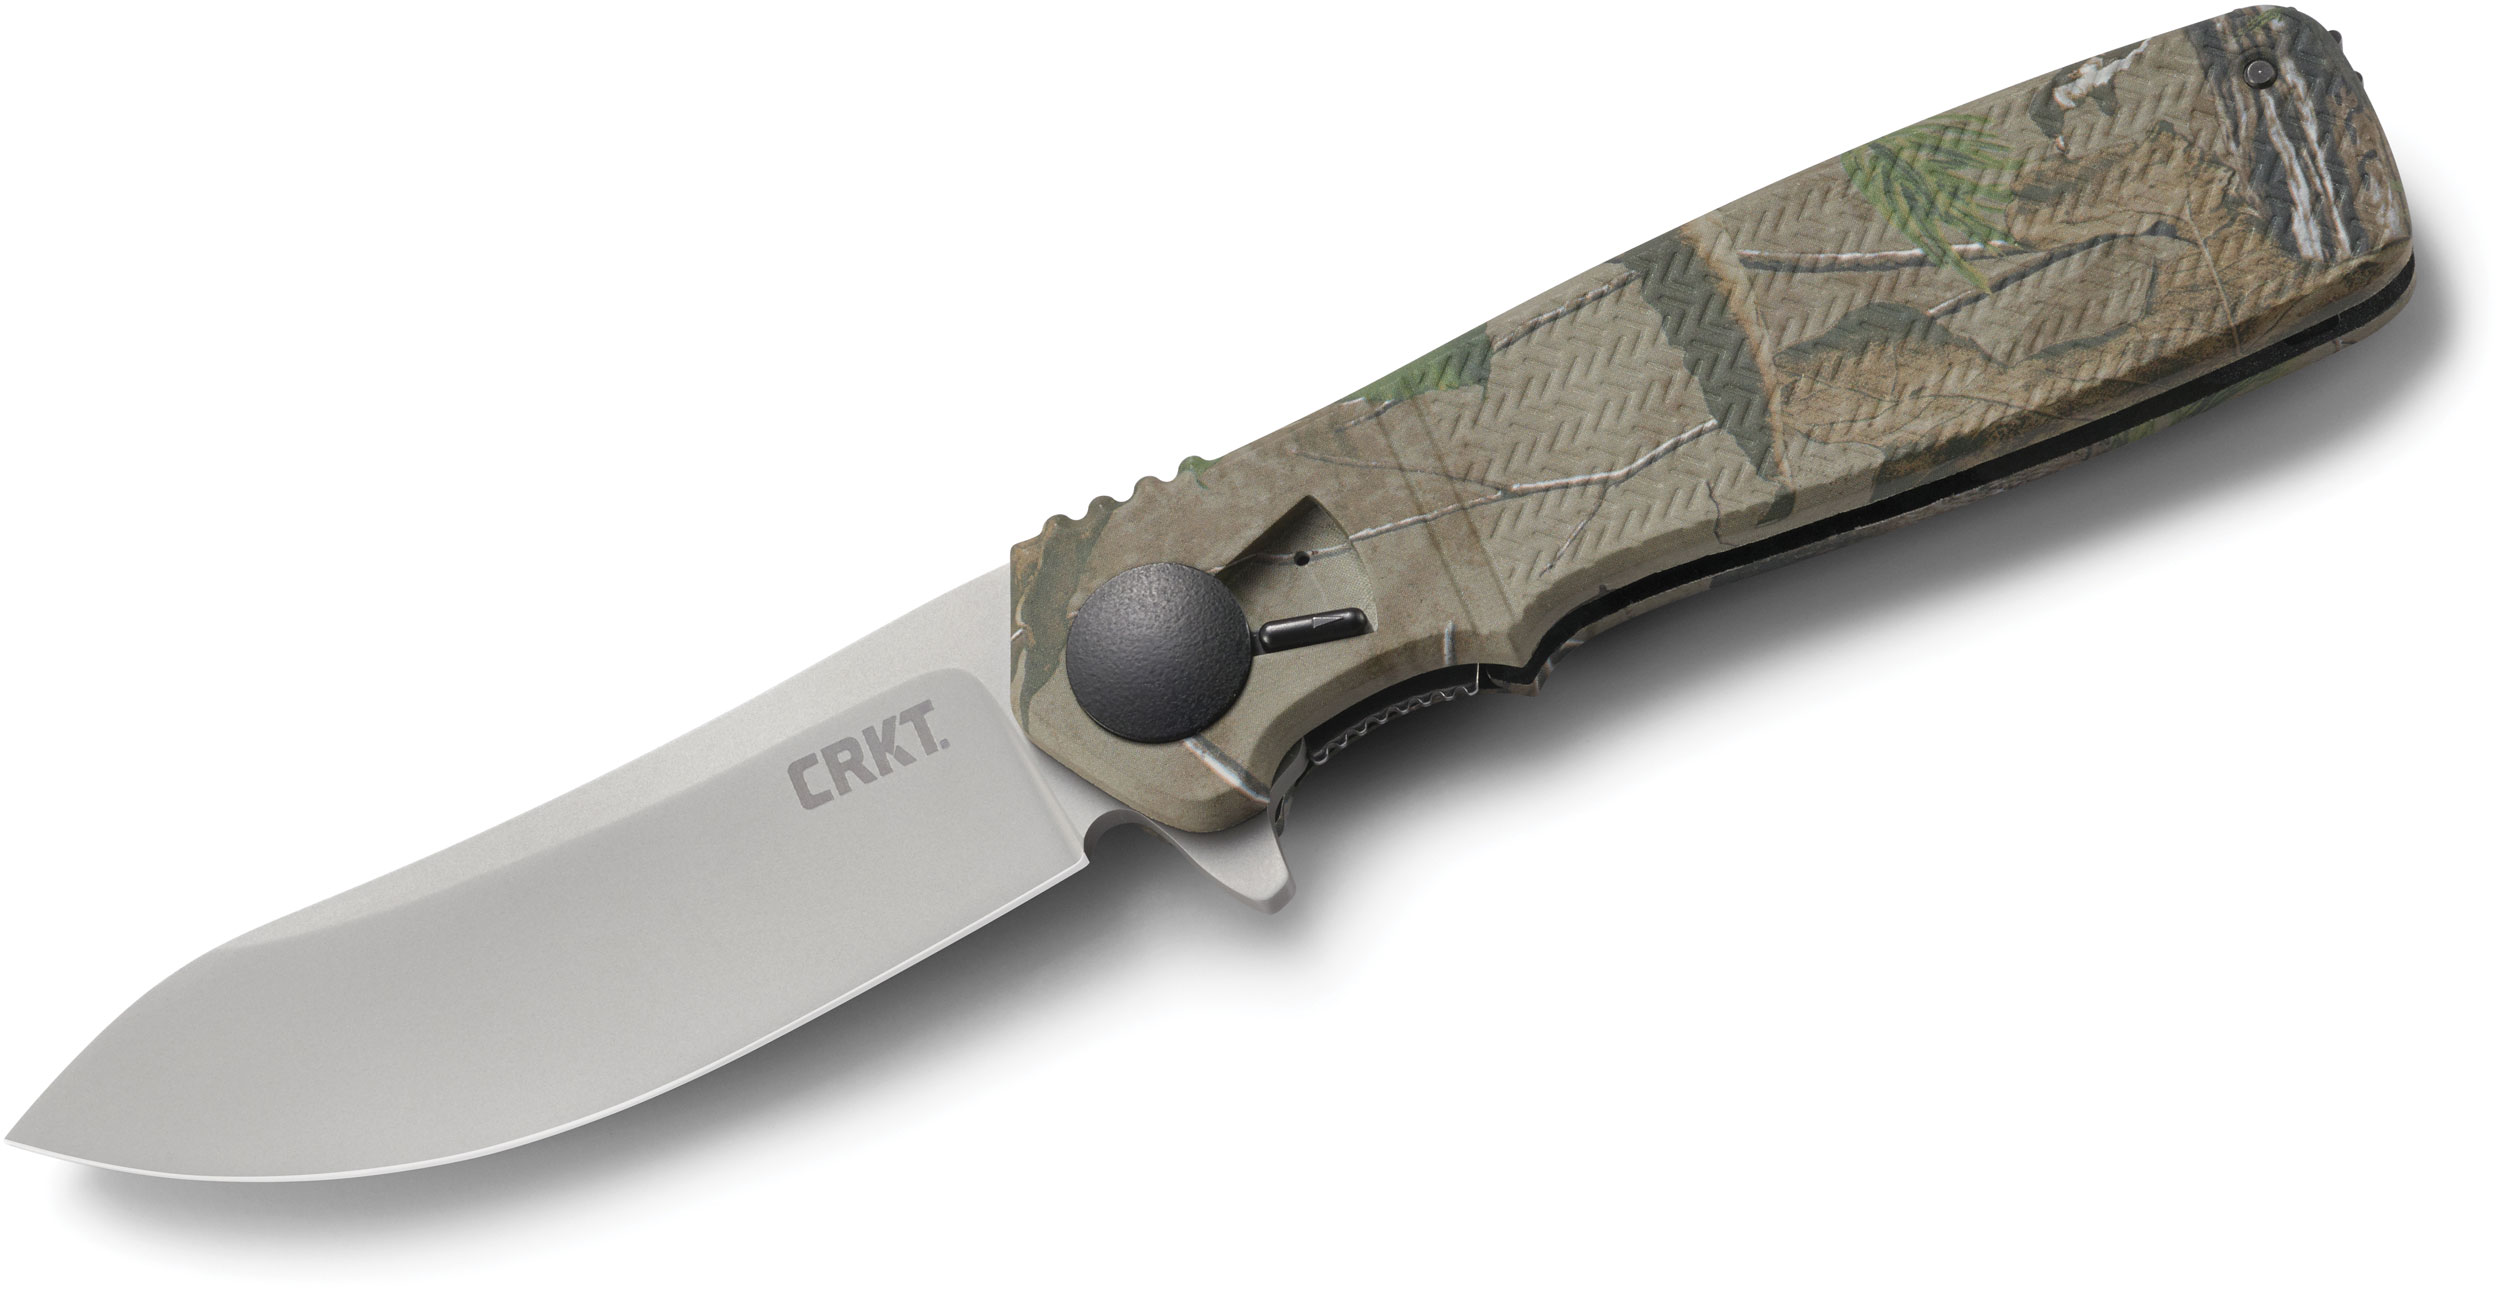 Columbia River CRKT K265CXP Homefront Hunter Flipper 3.566 inch Satin Plain Blade, Realtree XL Camo GRN Handles - Field Strip Technology